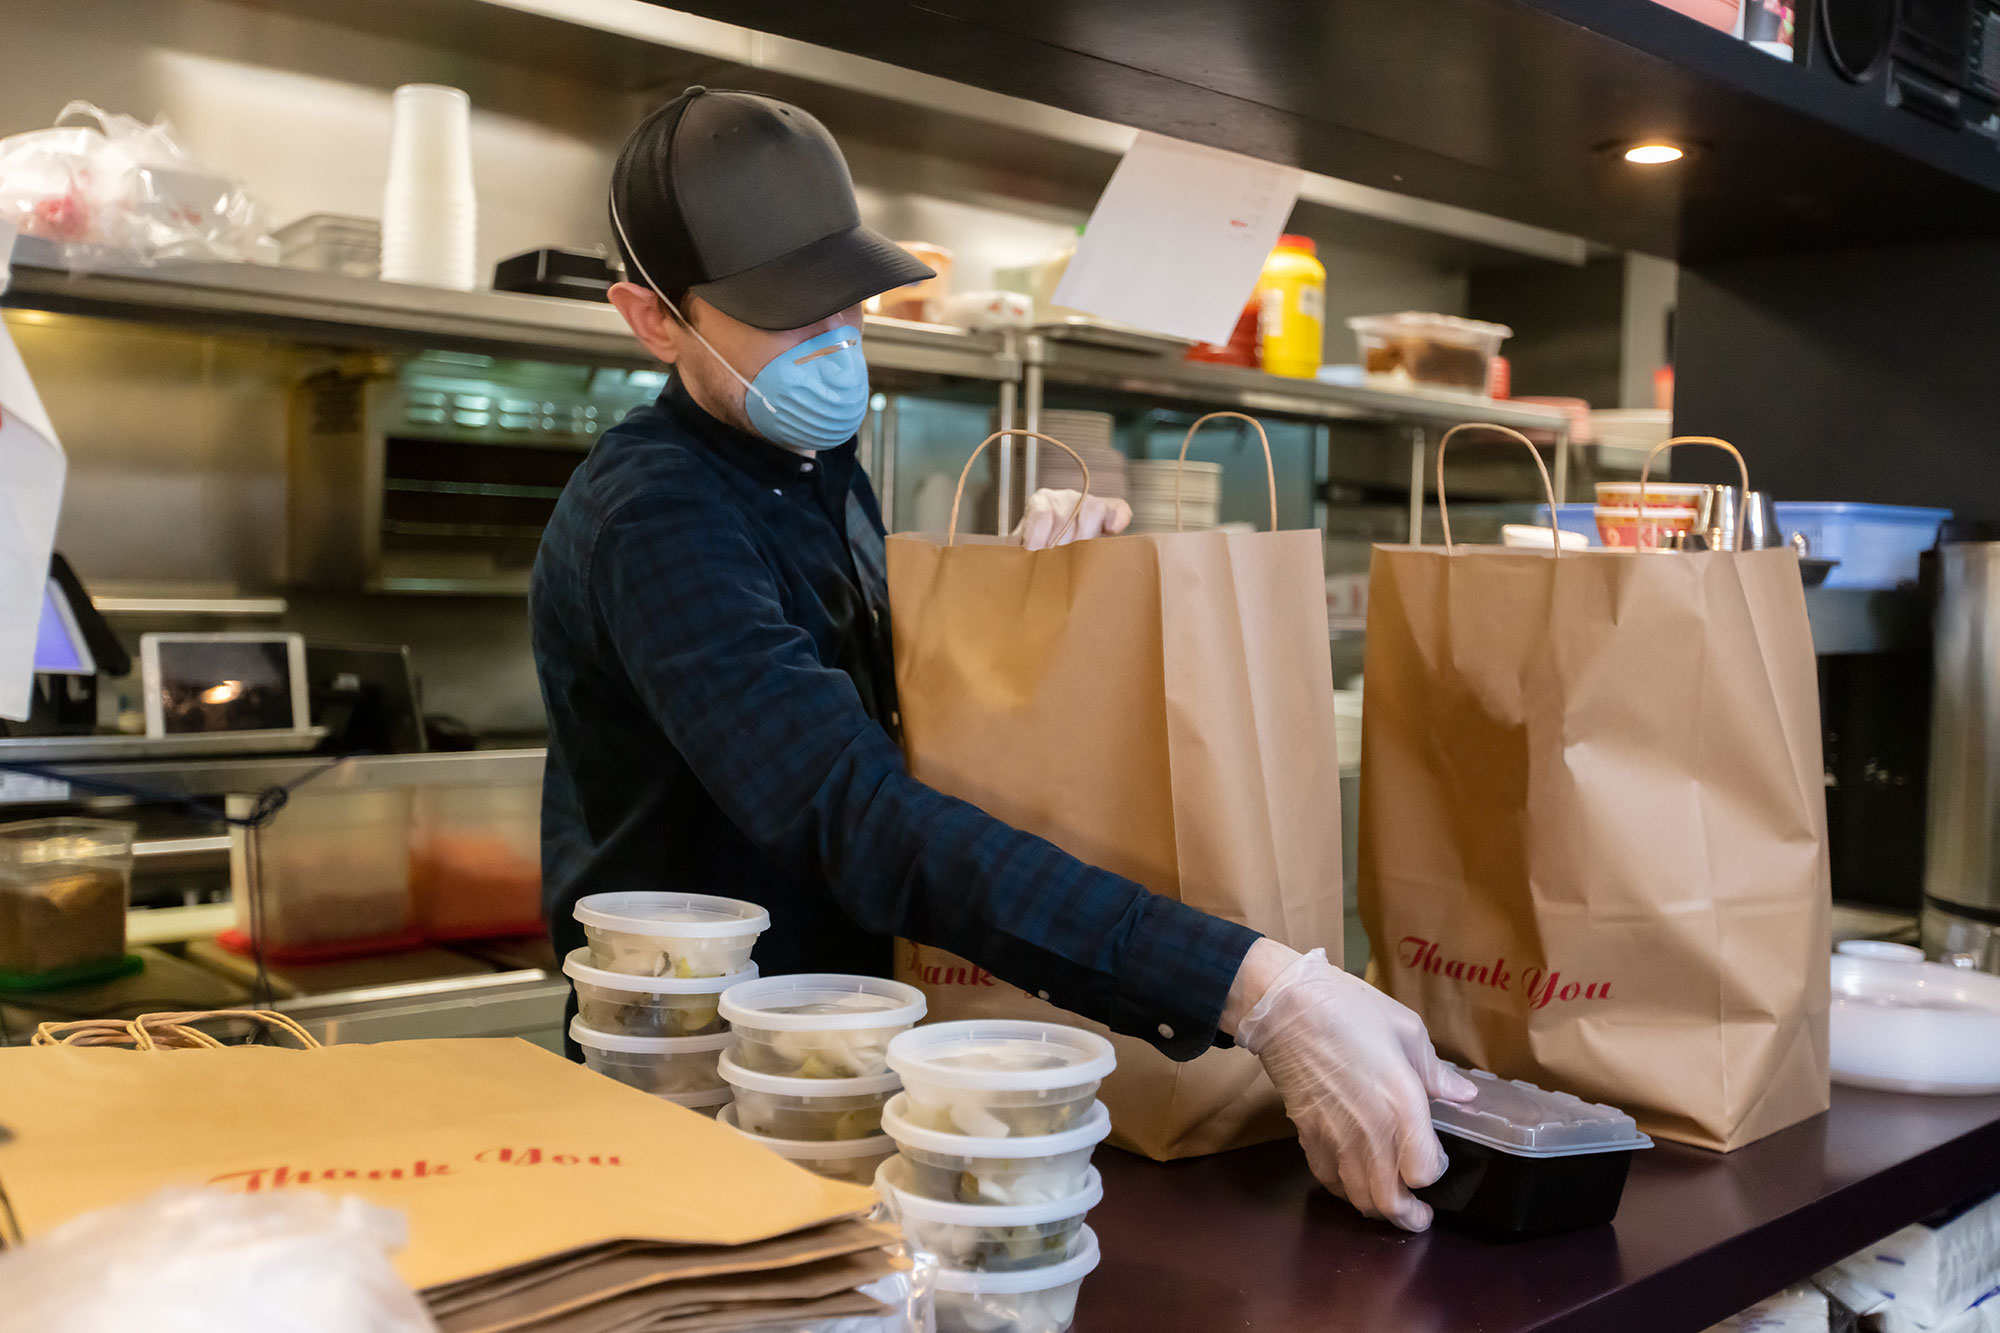 Gloved and Masked man in Restaurant Kitchen Preparing Food for Delivery During Covid-19 Pandemic